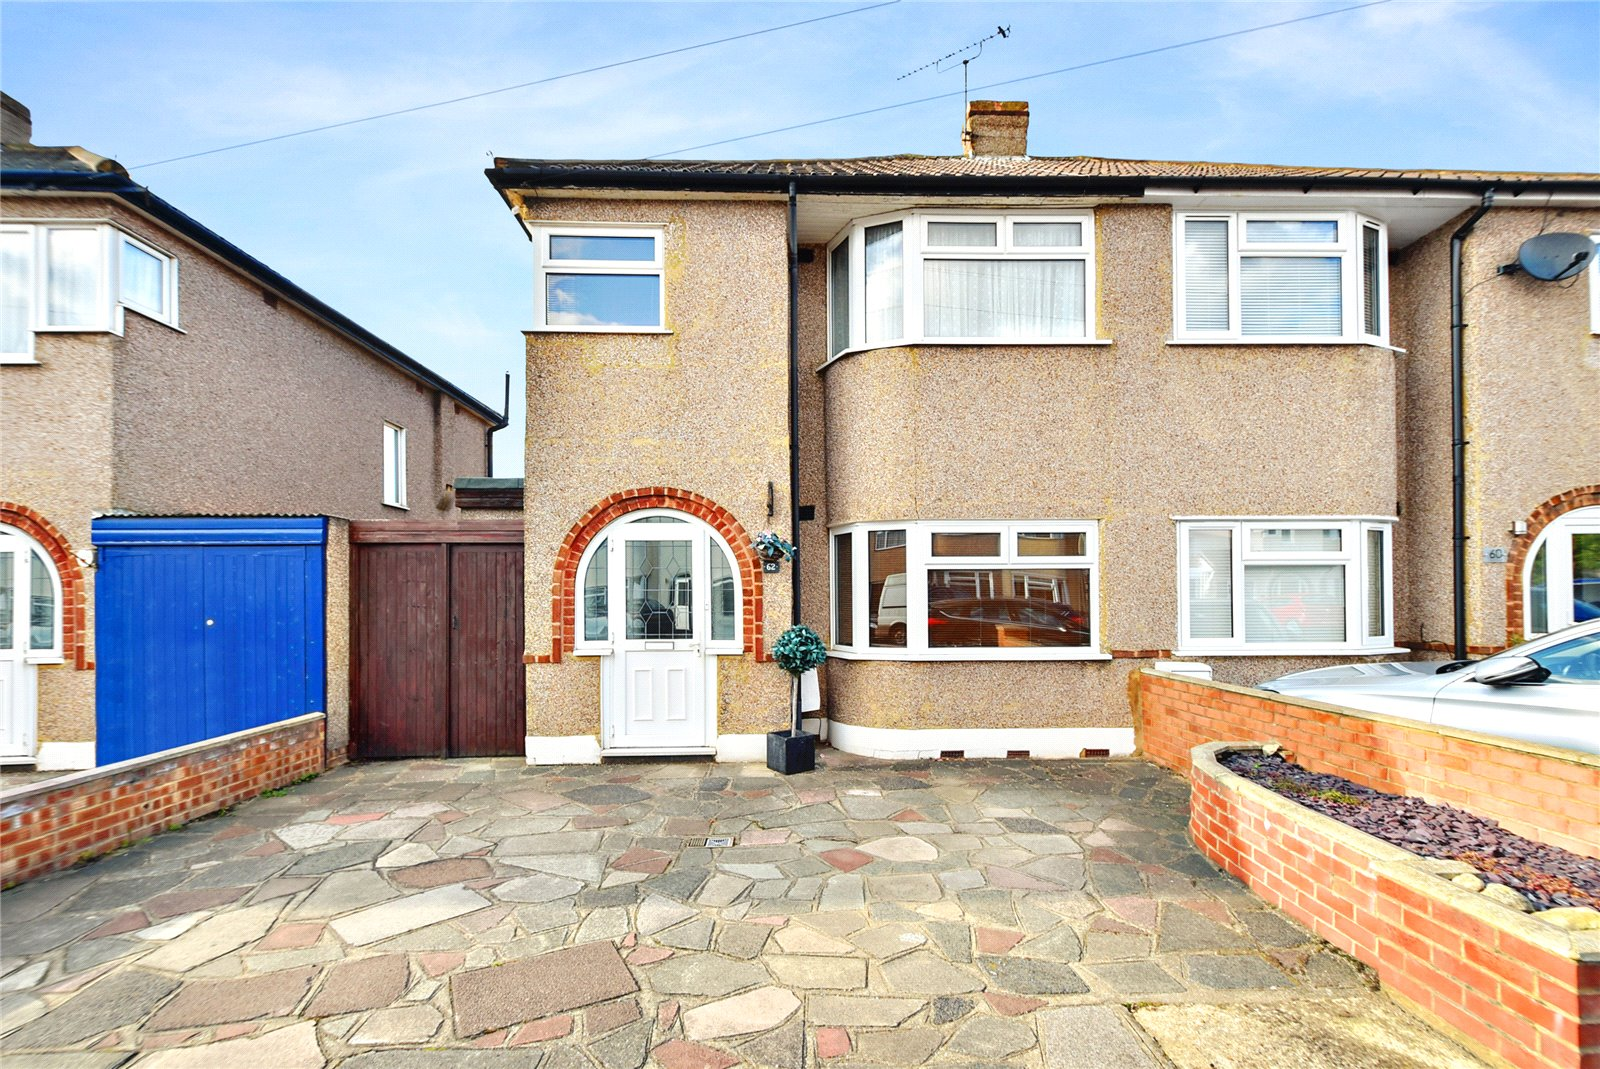 North Road, West Dartford, Kent, DA1